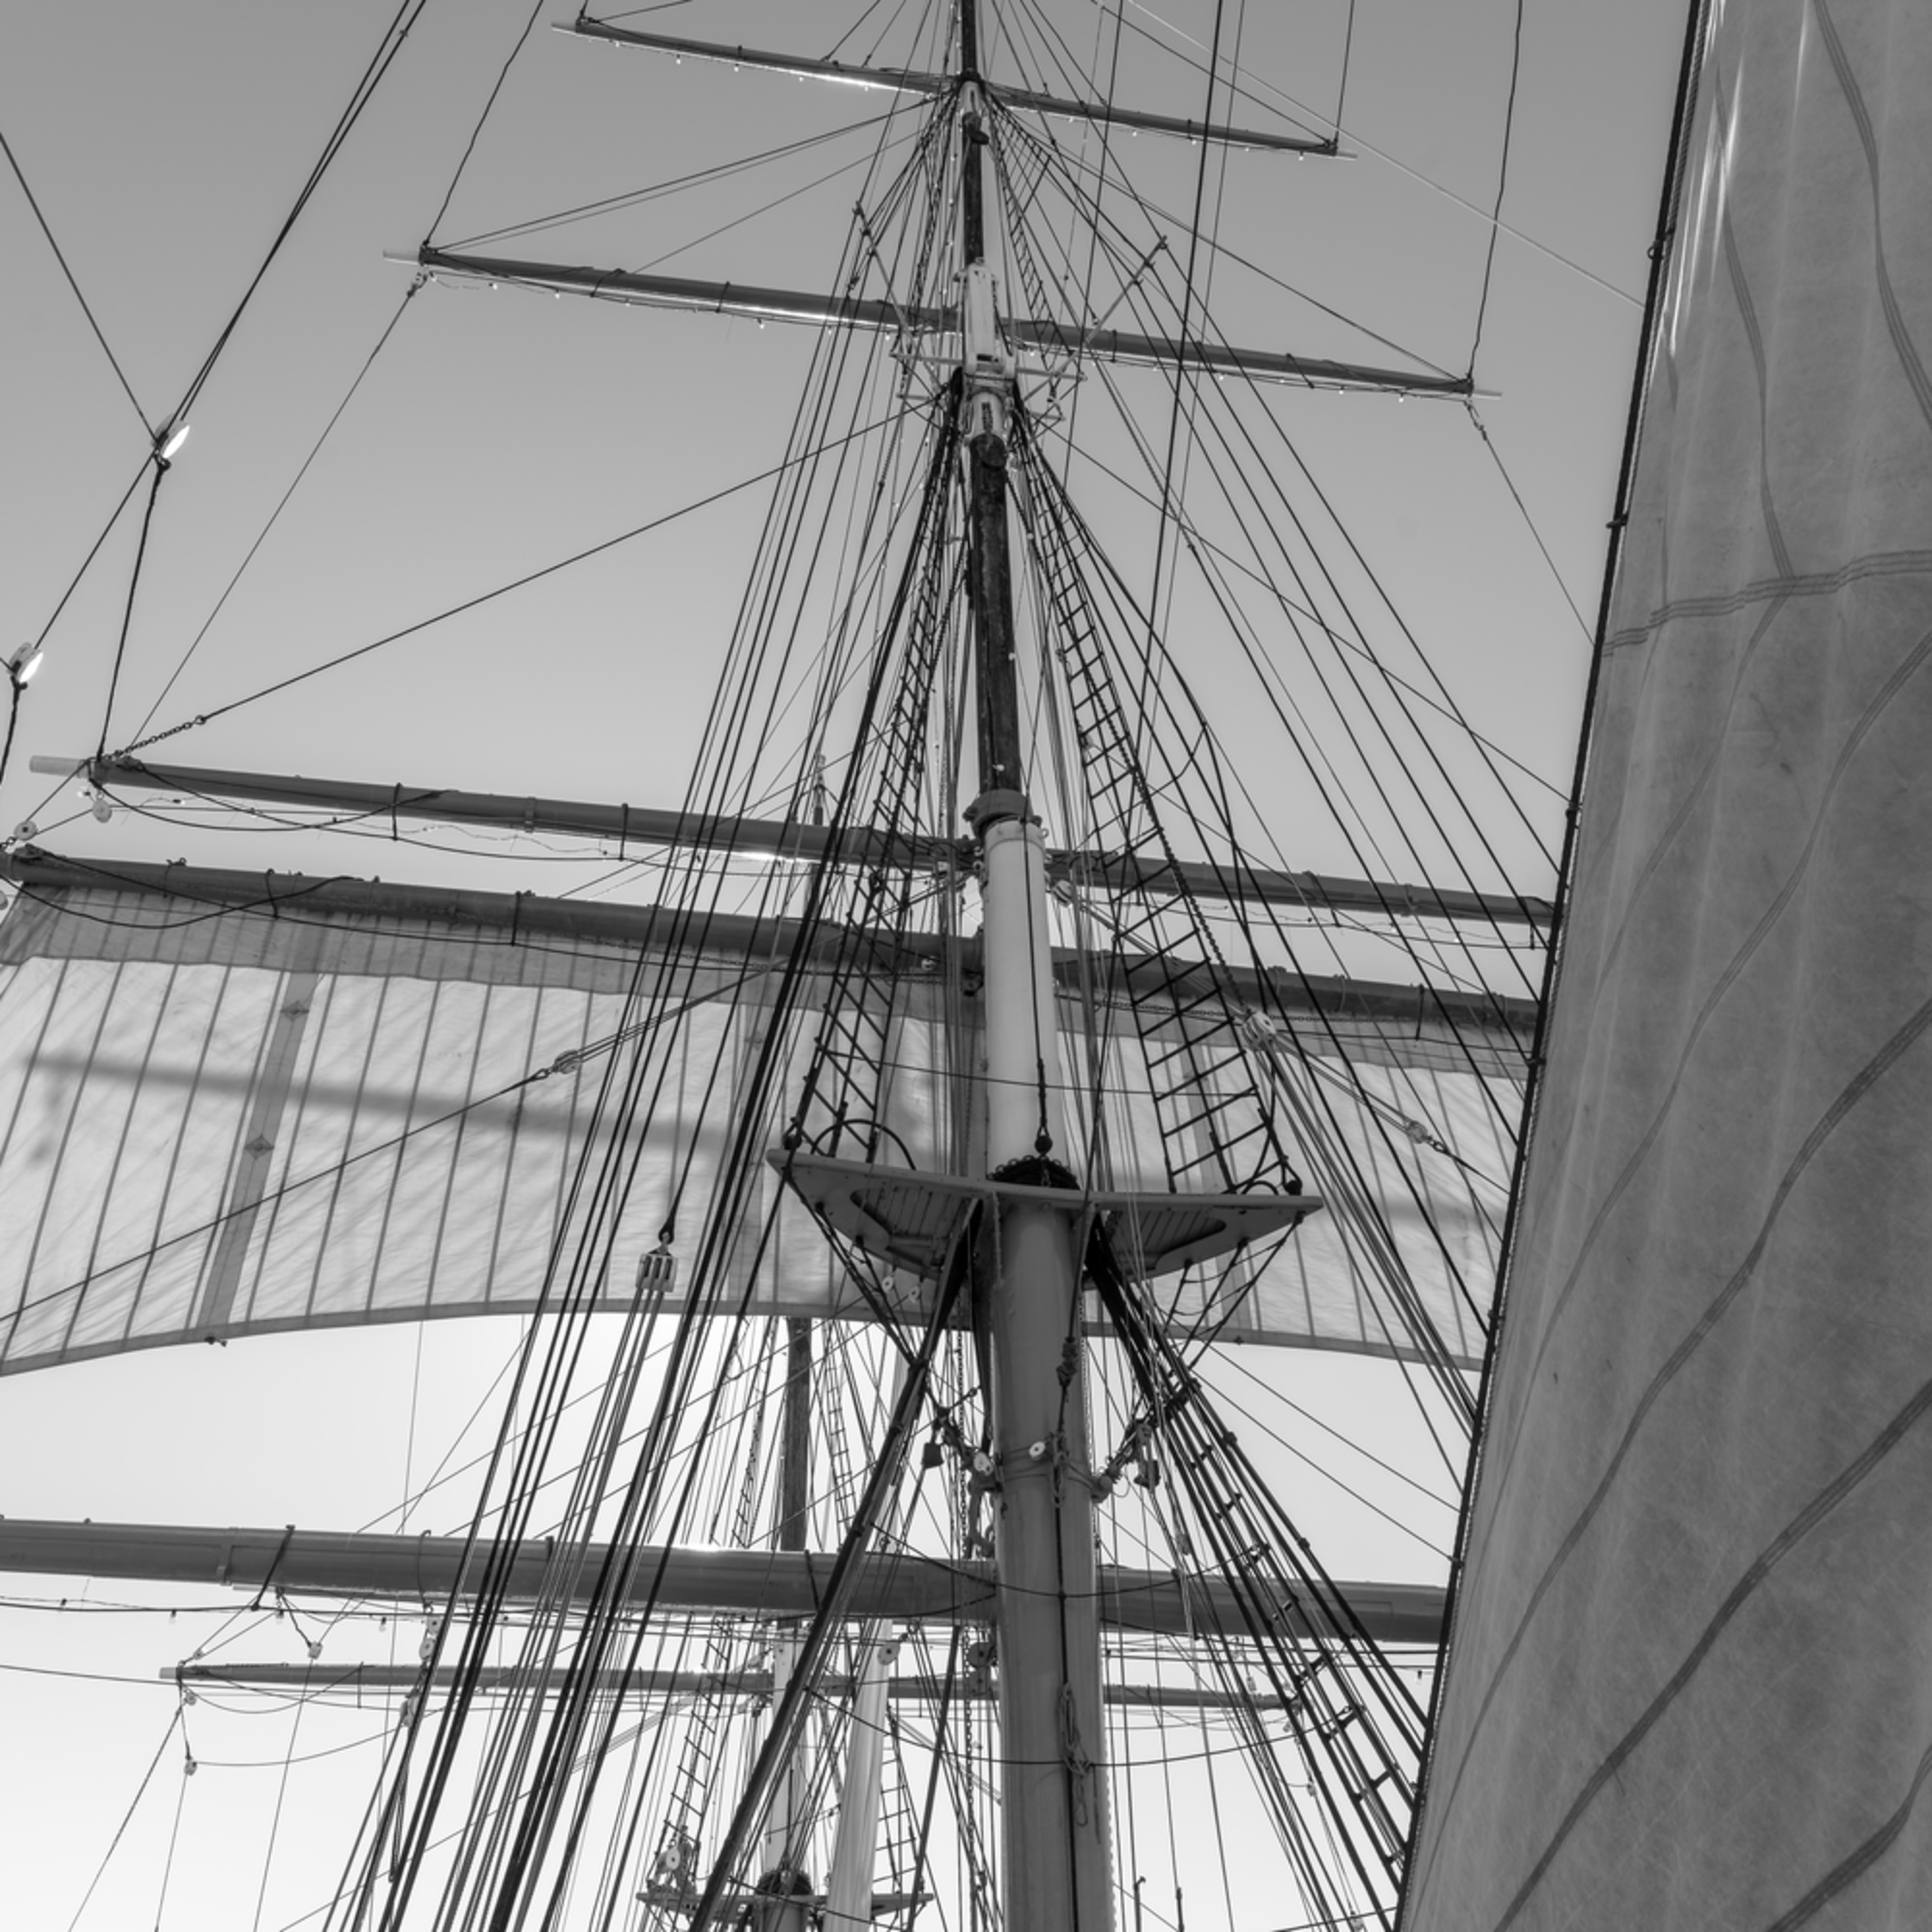 Main lower topsail and staysail   star of india  ey1nak